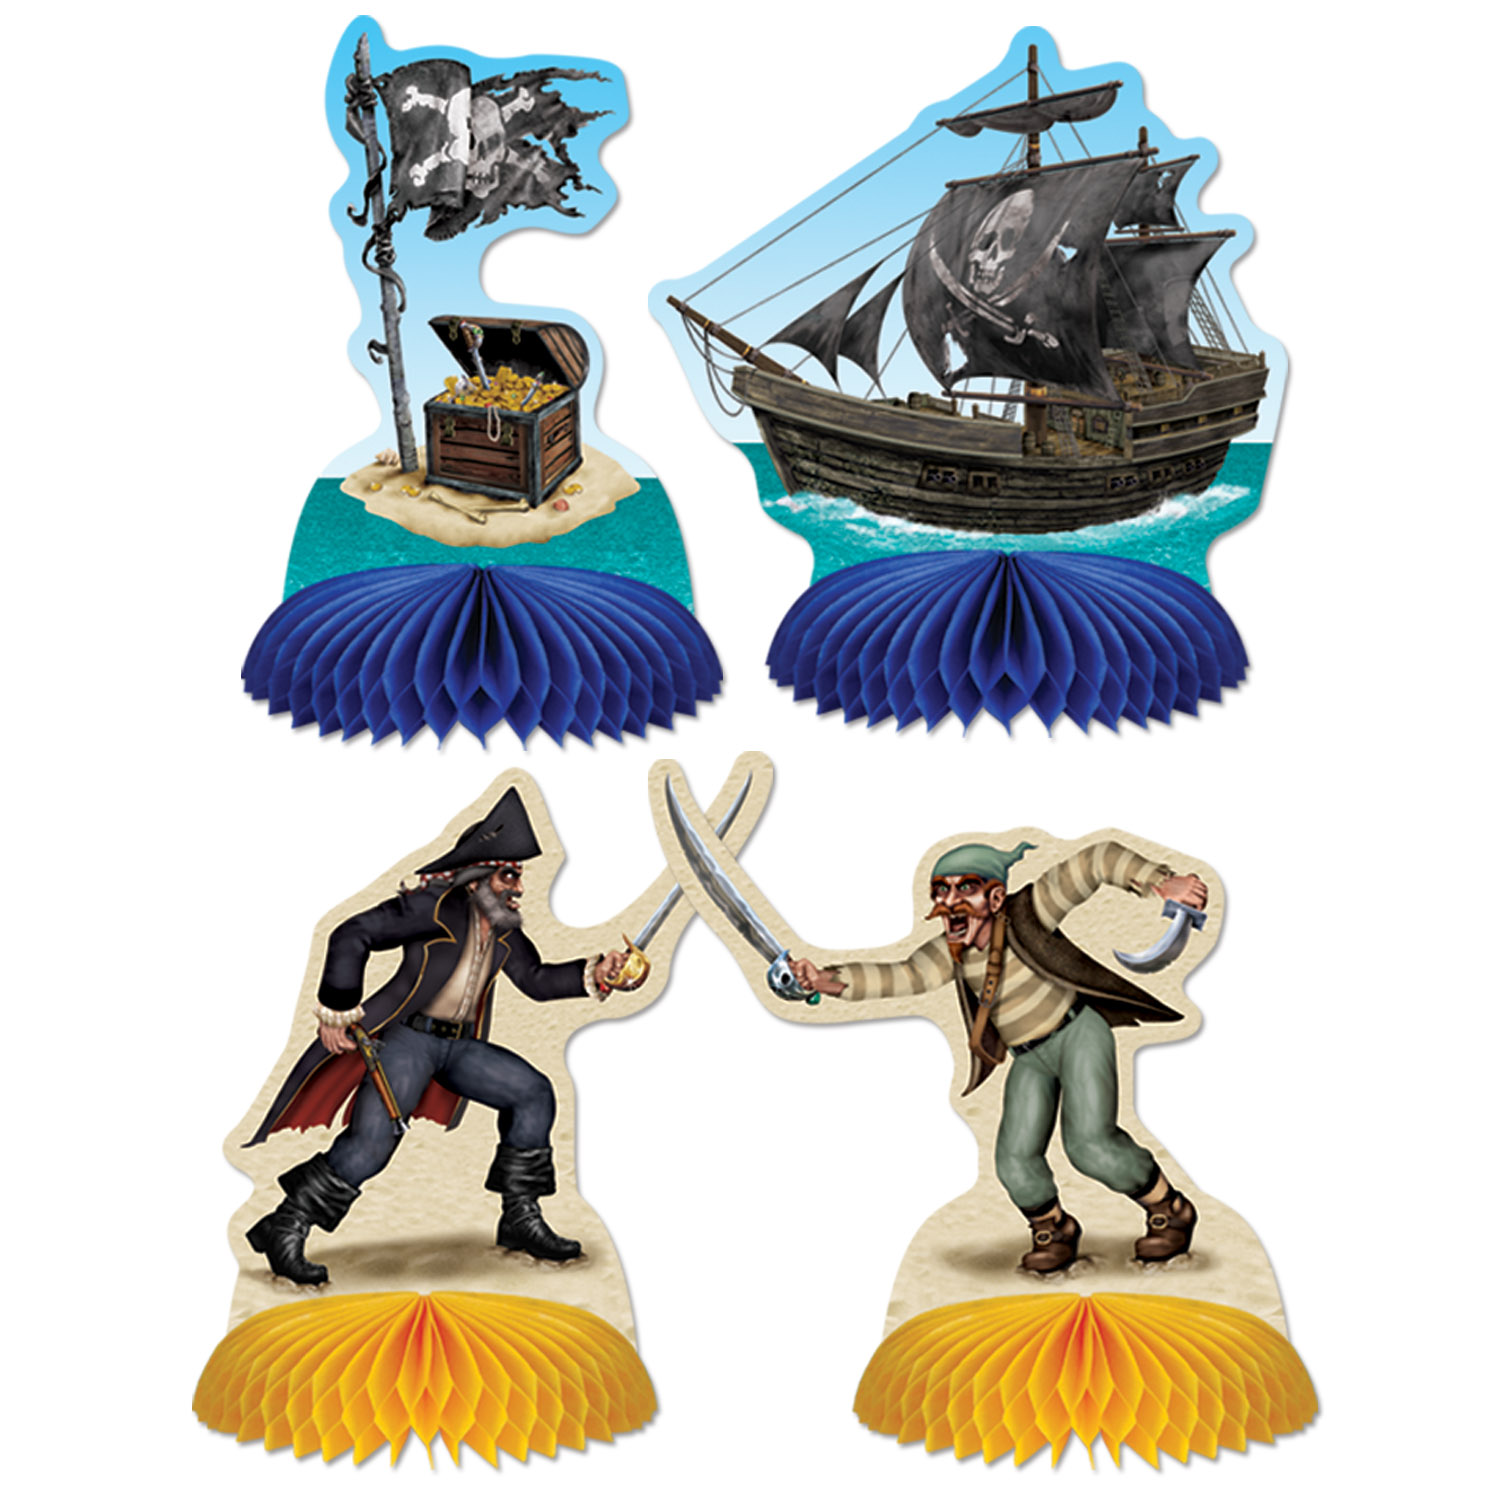 Pirate Playmates (Pack of 48) Pirate Playmates, Pirate centerpieces, Pirate ideas, Table Decorations, Wholesale party supplies, Inexpensive party, cheap decorations, Birthday ideas, Birthday decoraions, cheap centerpieces